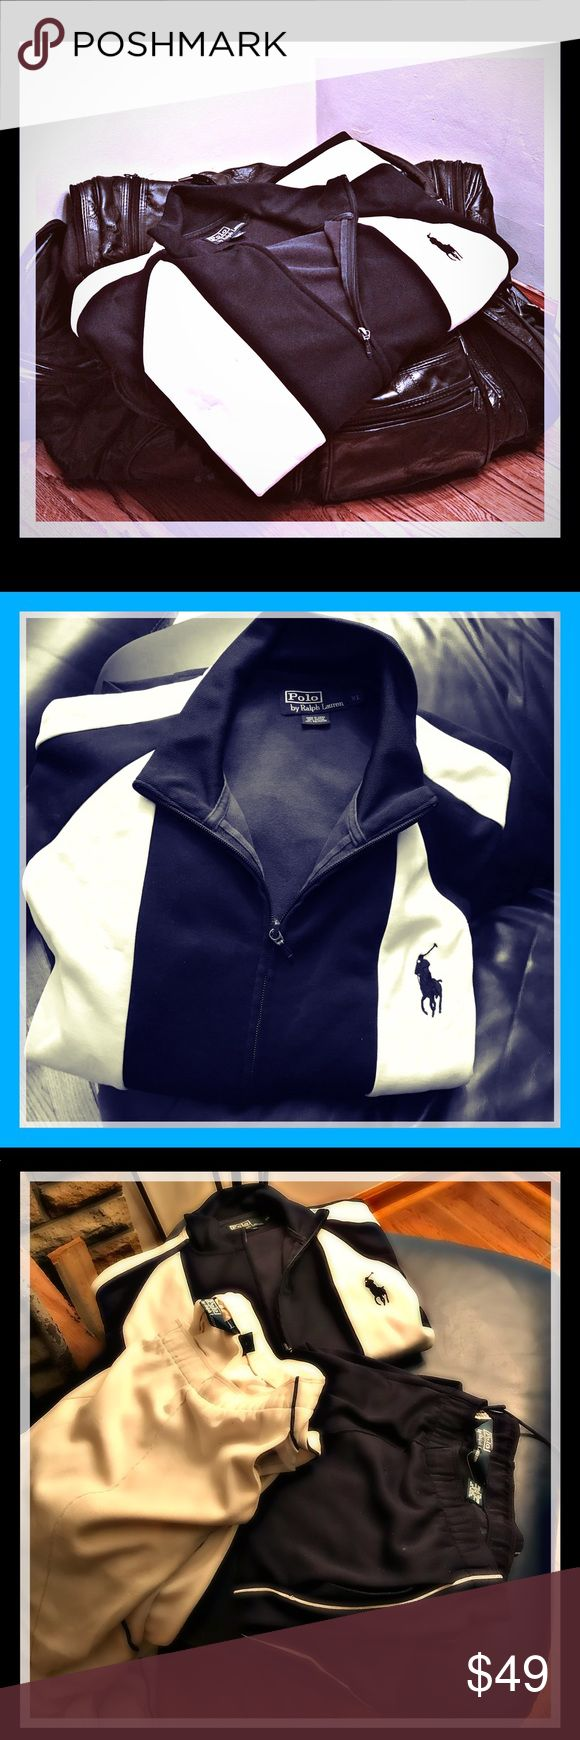 Ralph Lauren Jogging suit w 2 pair pants Famous Ralph Lauren polo jogging suit with two pair of pants jacket is extra large pants are XexL pants are adjustable this jogging outfit is an attention-getting her with both white and blue pants it makes it like having two separate jogging suits it has been a more however this merchandise is made by Ralph Lauren they last for years and years Polo by Ralph Lauren Other